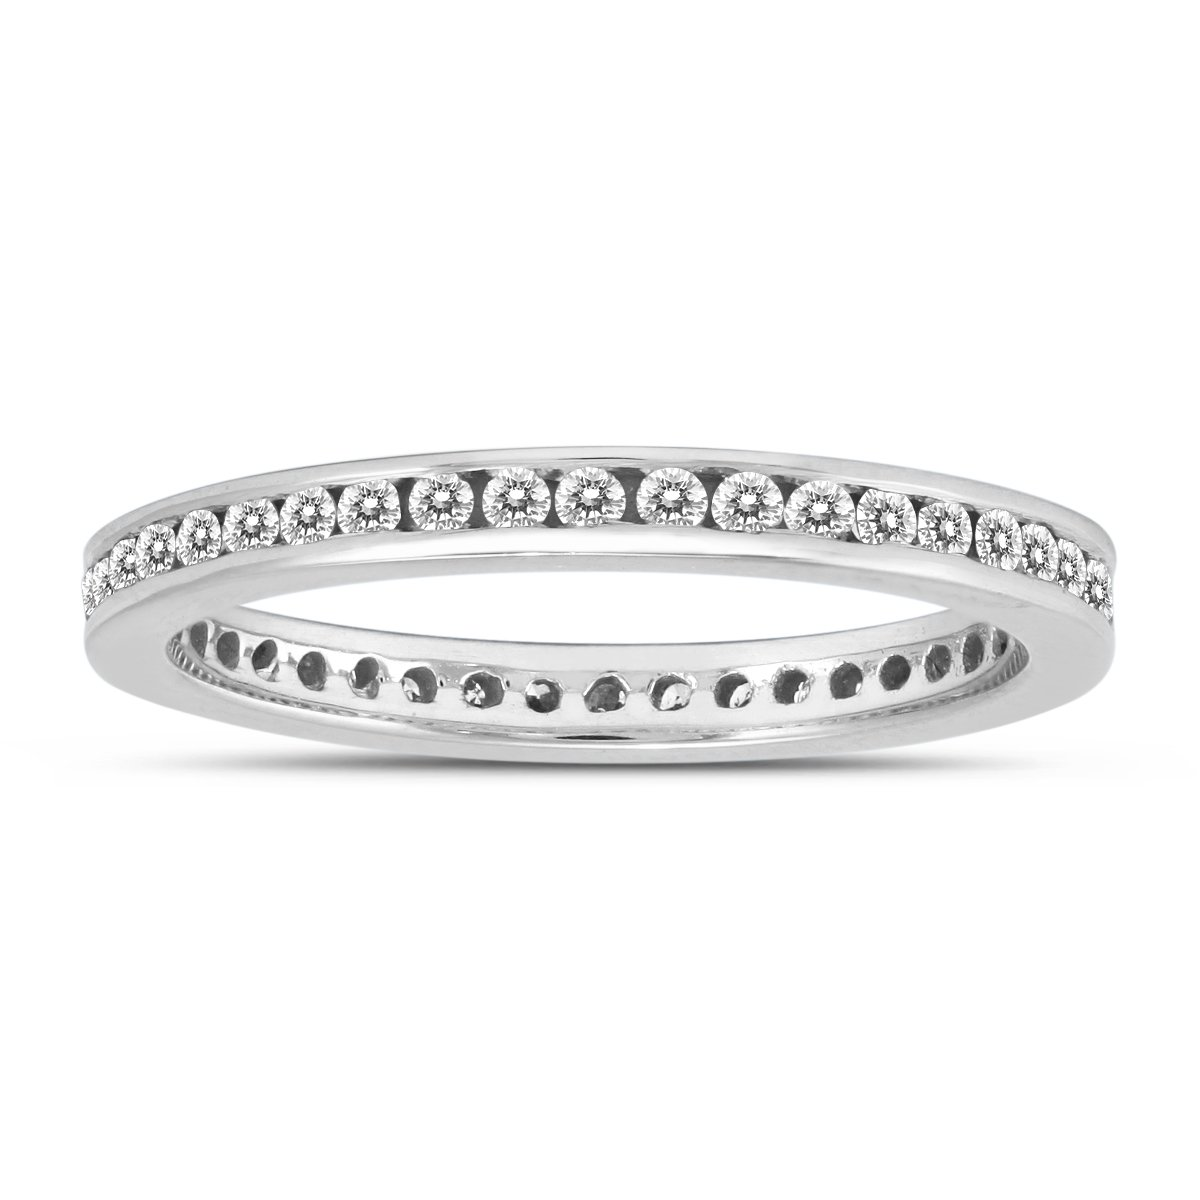 AGS Certified 1/2 Carat TW Channel Set Thin Eternity Diamond Band in 10K White Gold